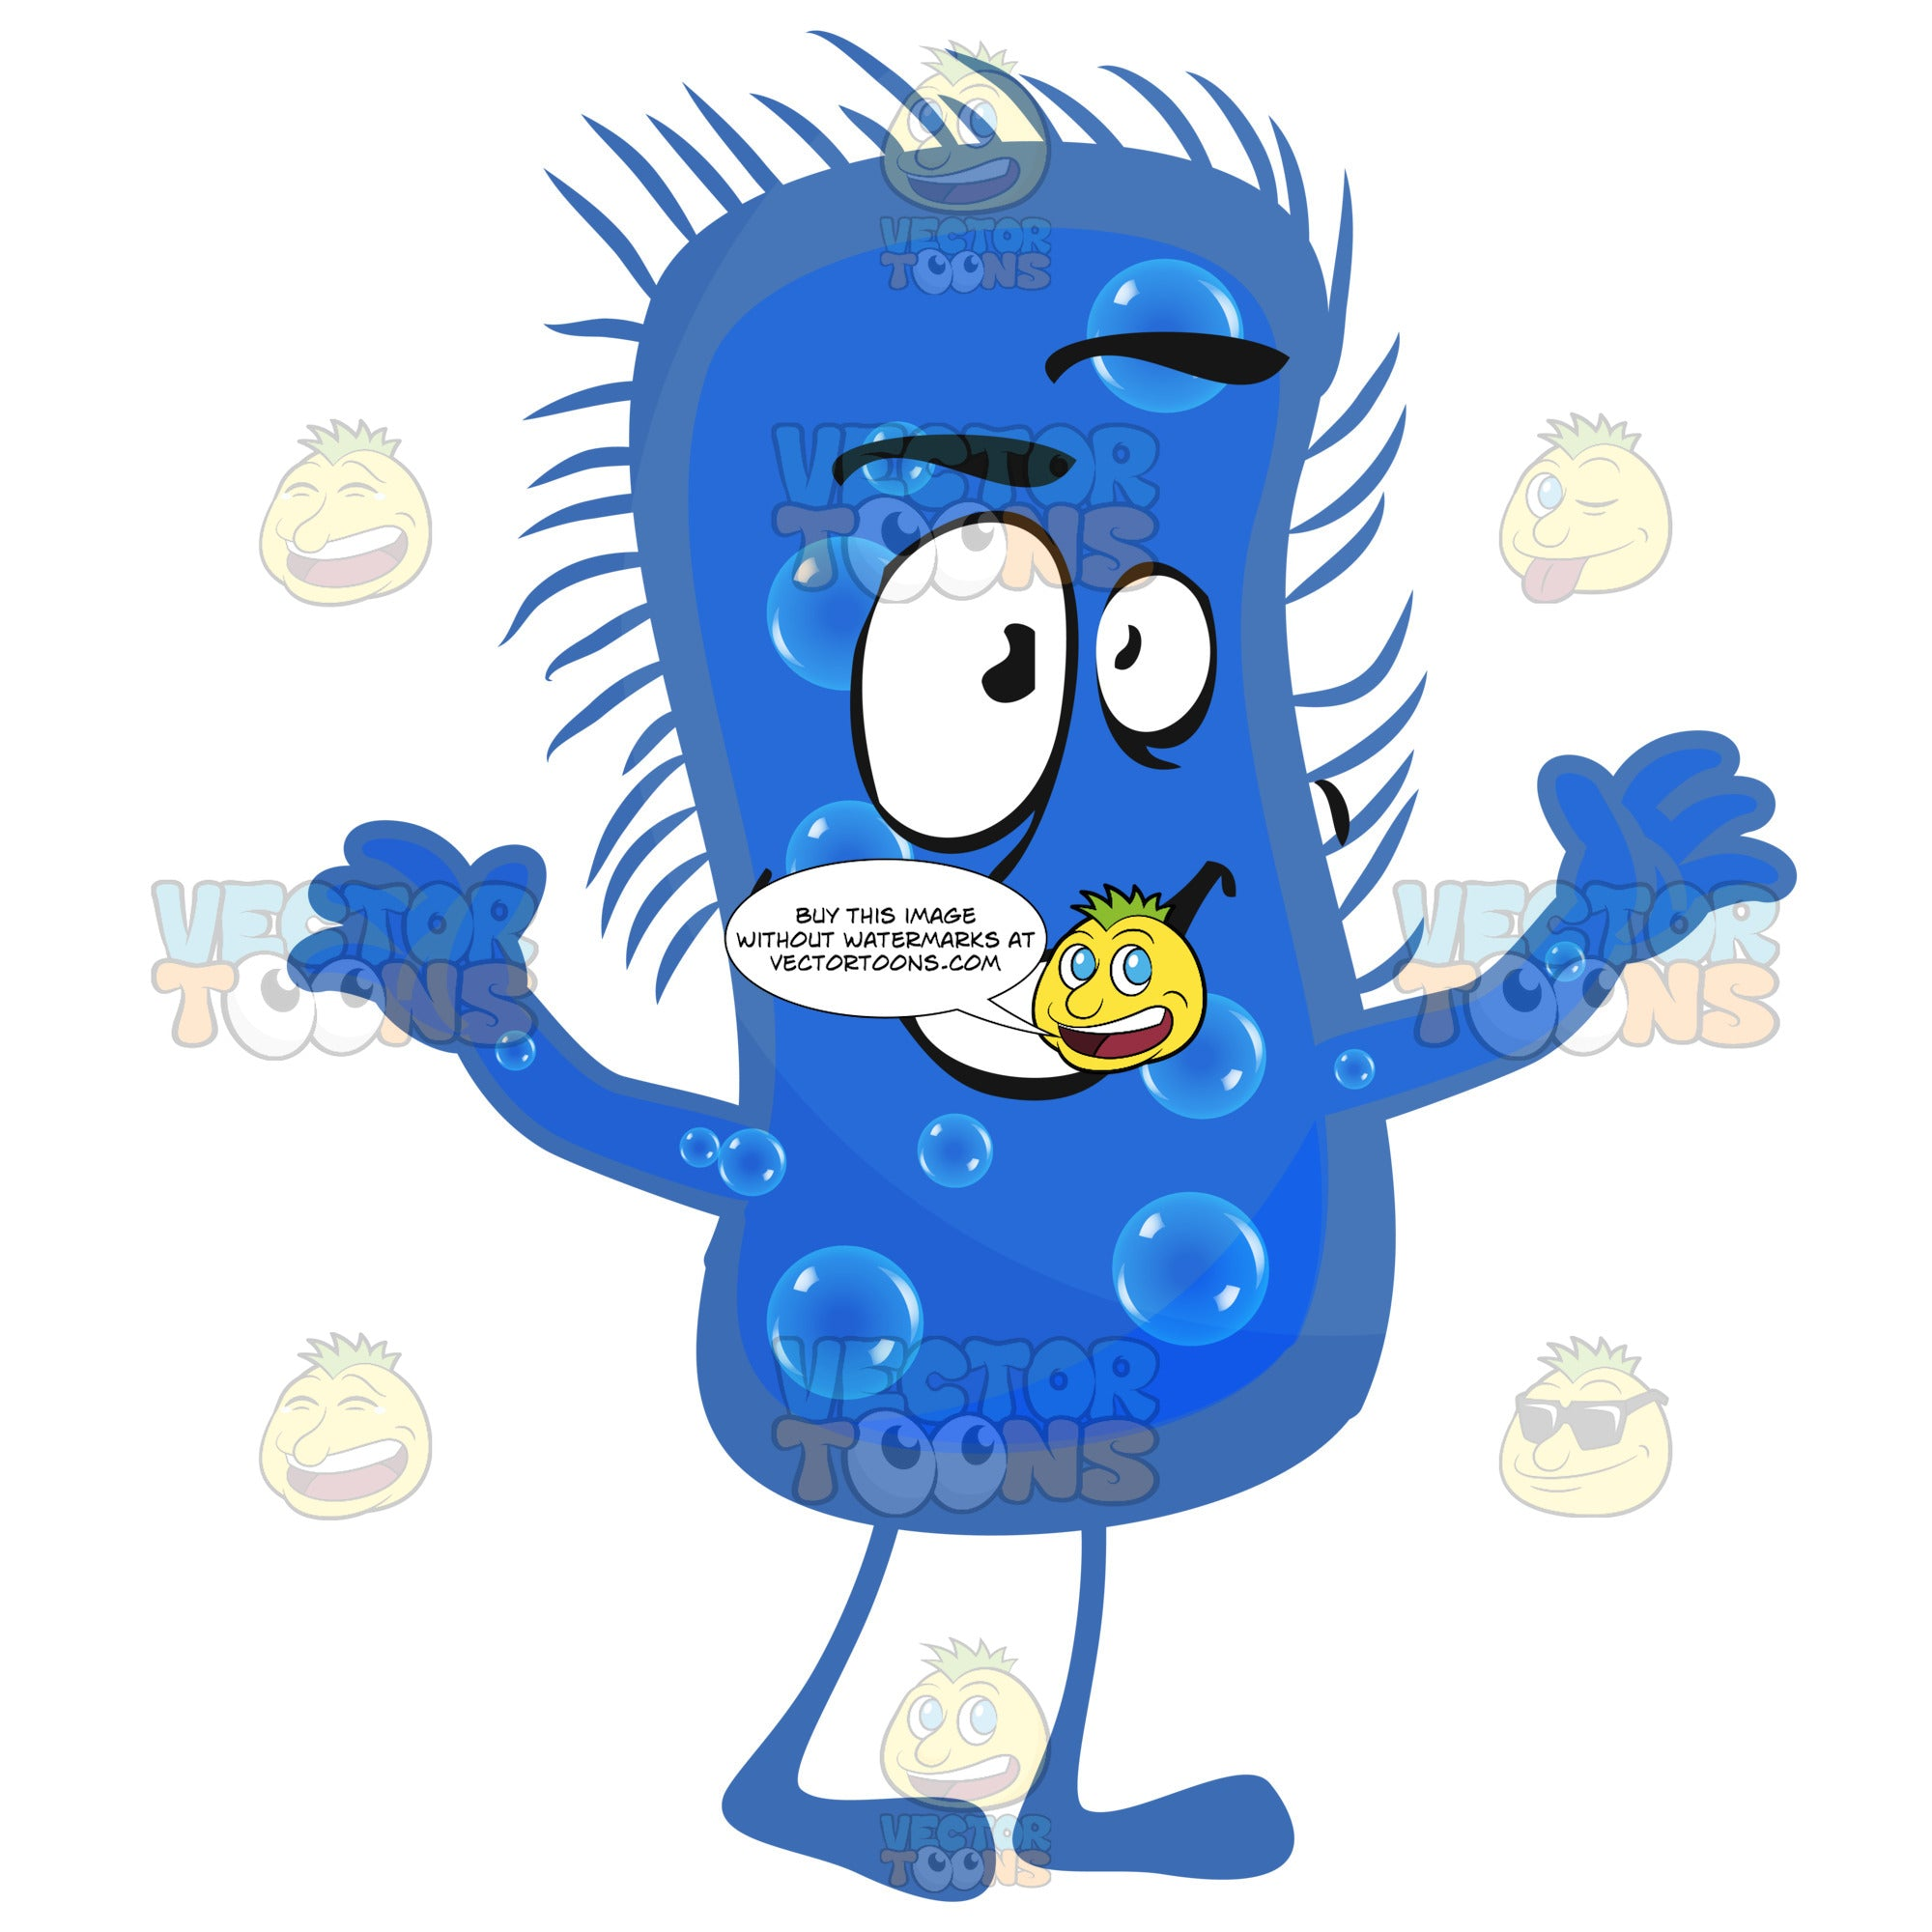 Peanut-Shaped Blue Bacteria Germ With Smiling Face, Legs And Arms